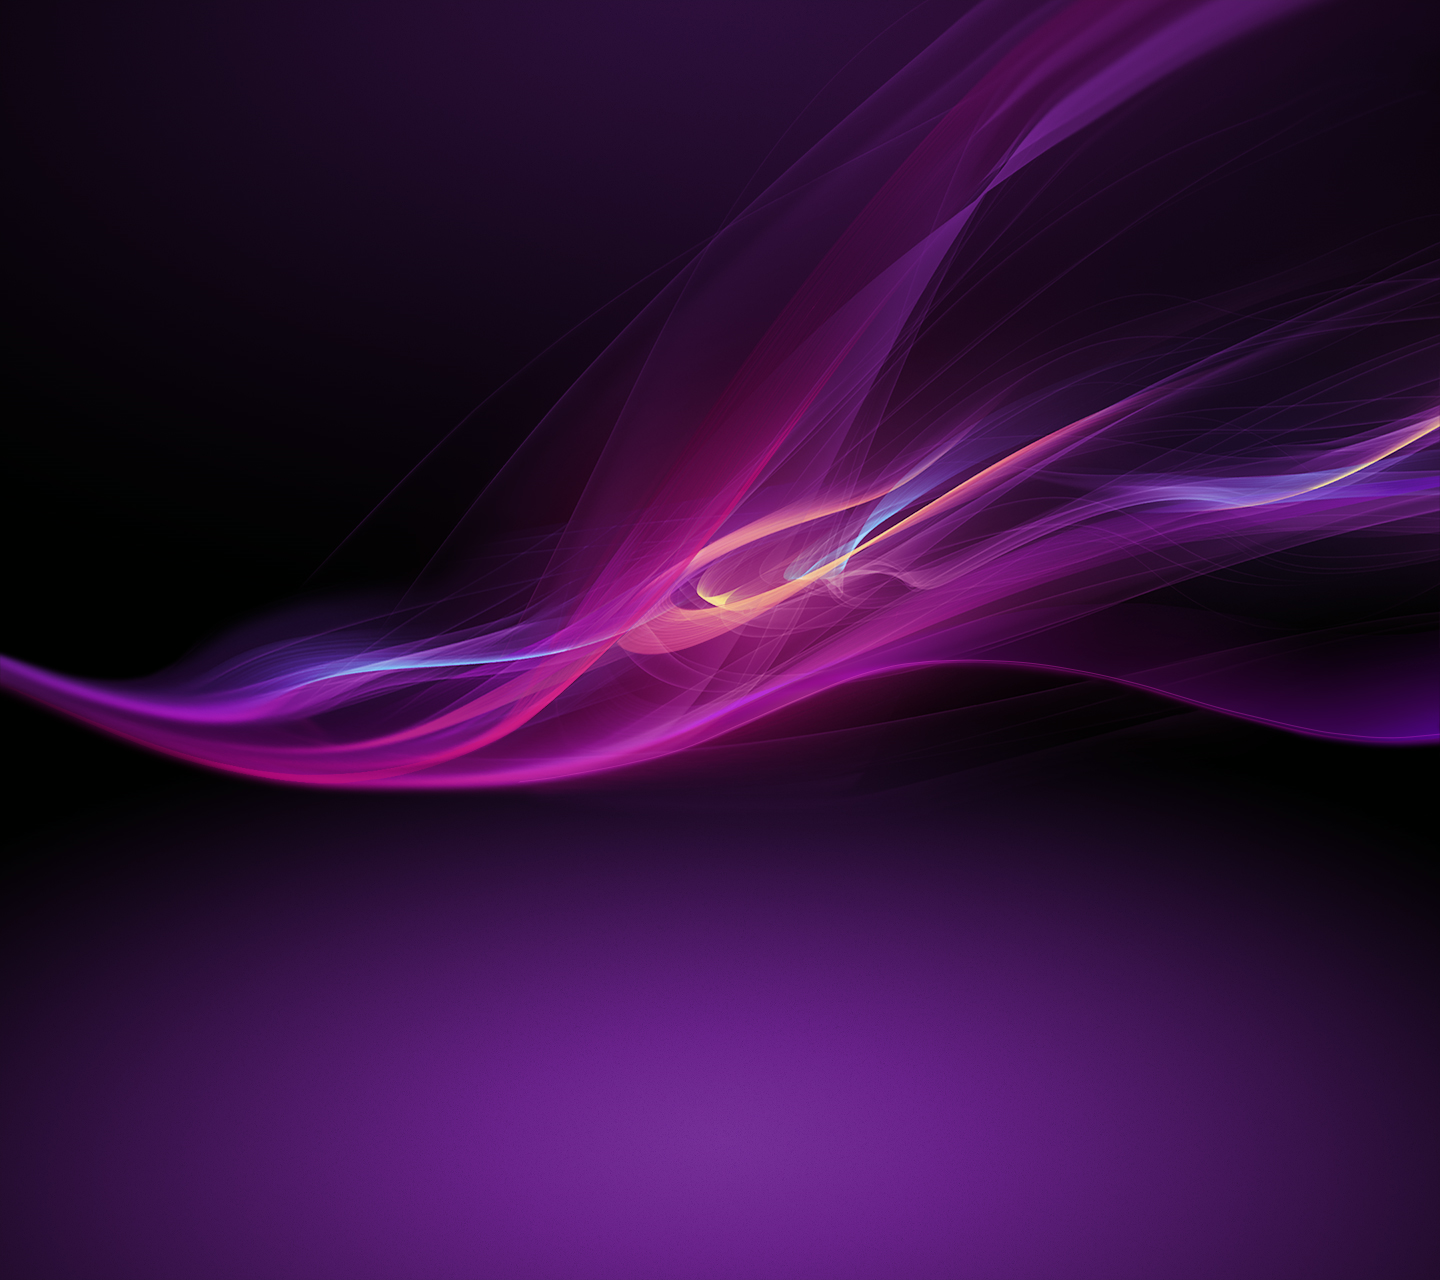 Sony Xperia Z Original Wallpapers 2013